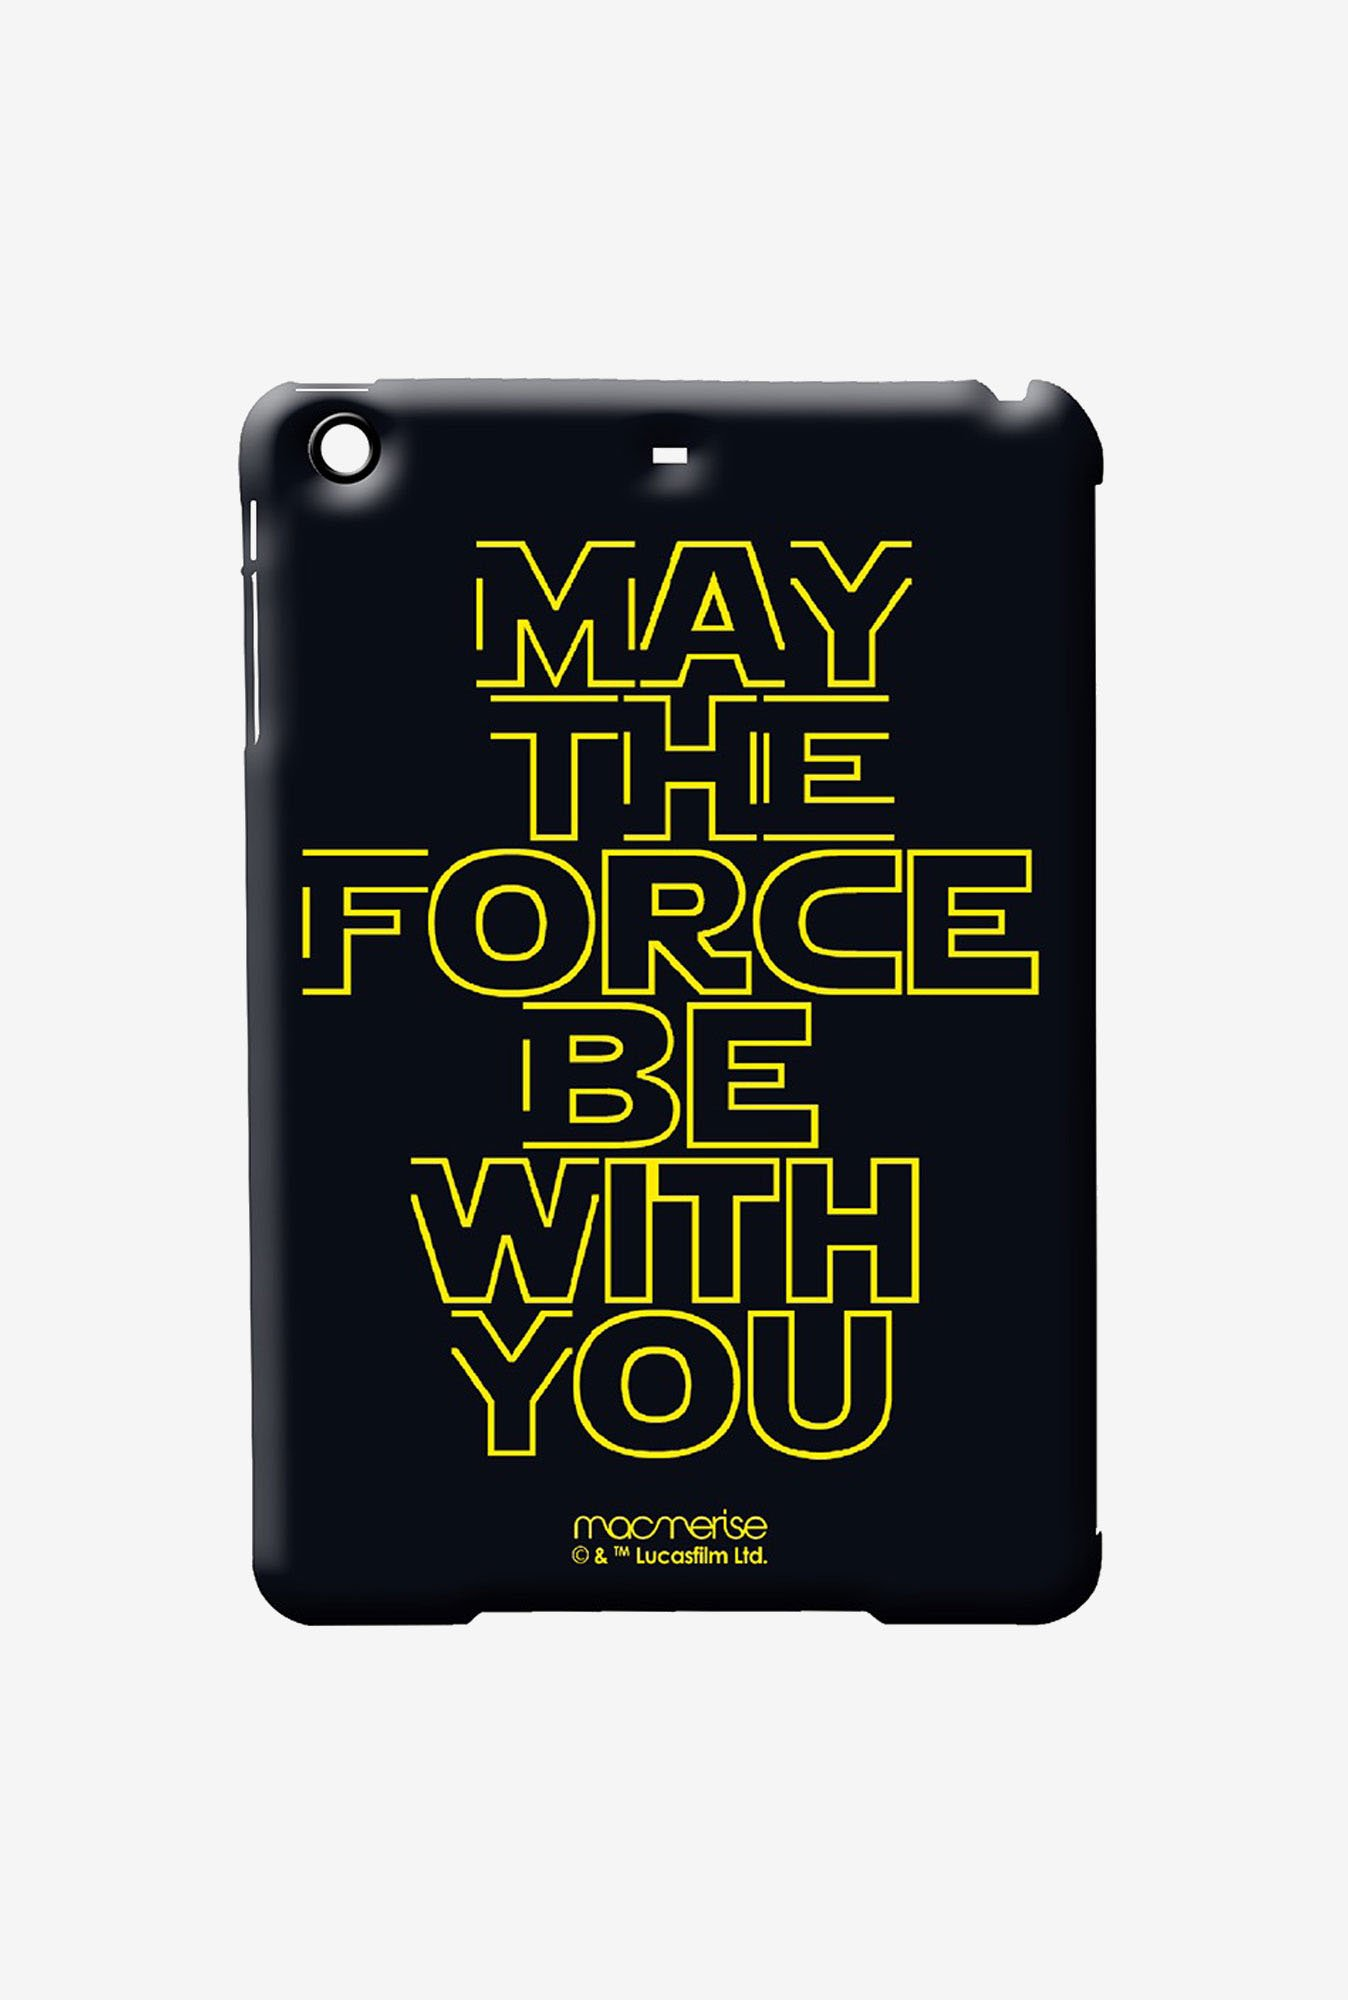 Macmerise Classic Star Wars Pro Case for iPad Air 2